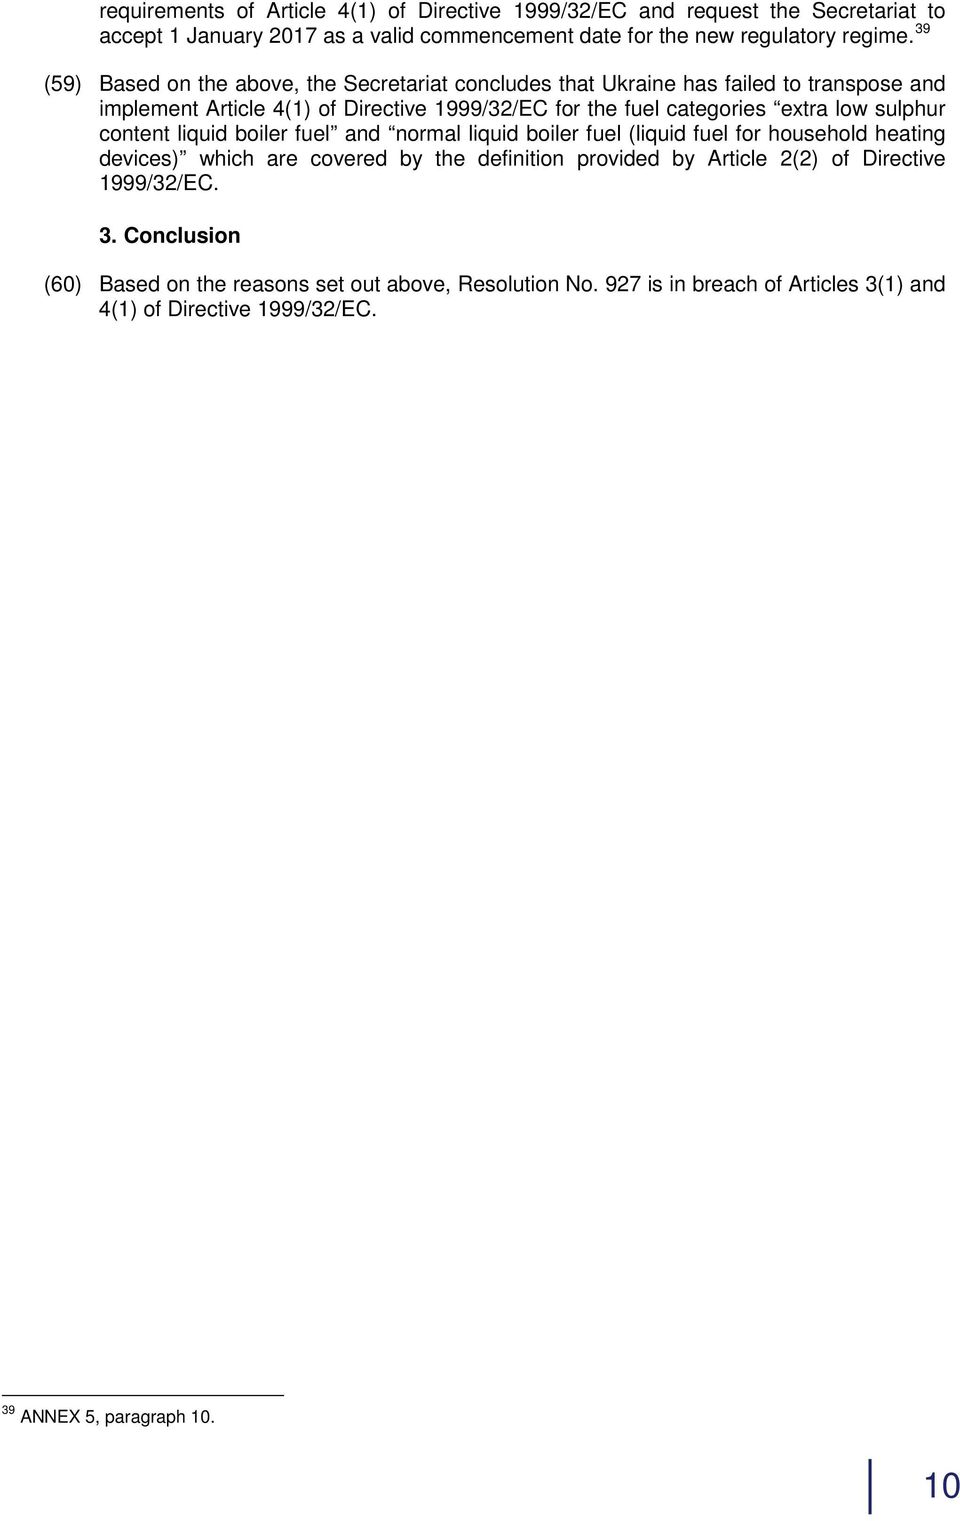 sulphur content liquid boiler fuel and normal liquid boiler fuel (liquid fuel for household heating devices) which are covered by the definition provided by Article 2(2) of